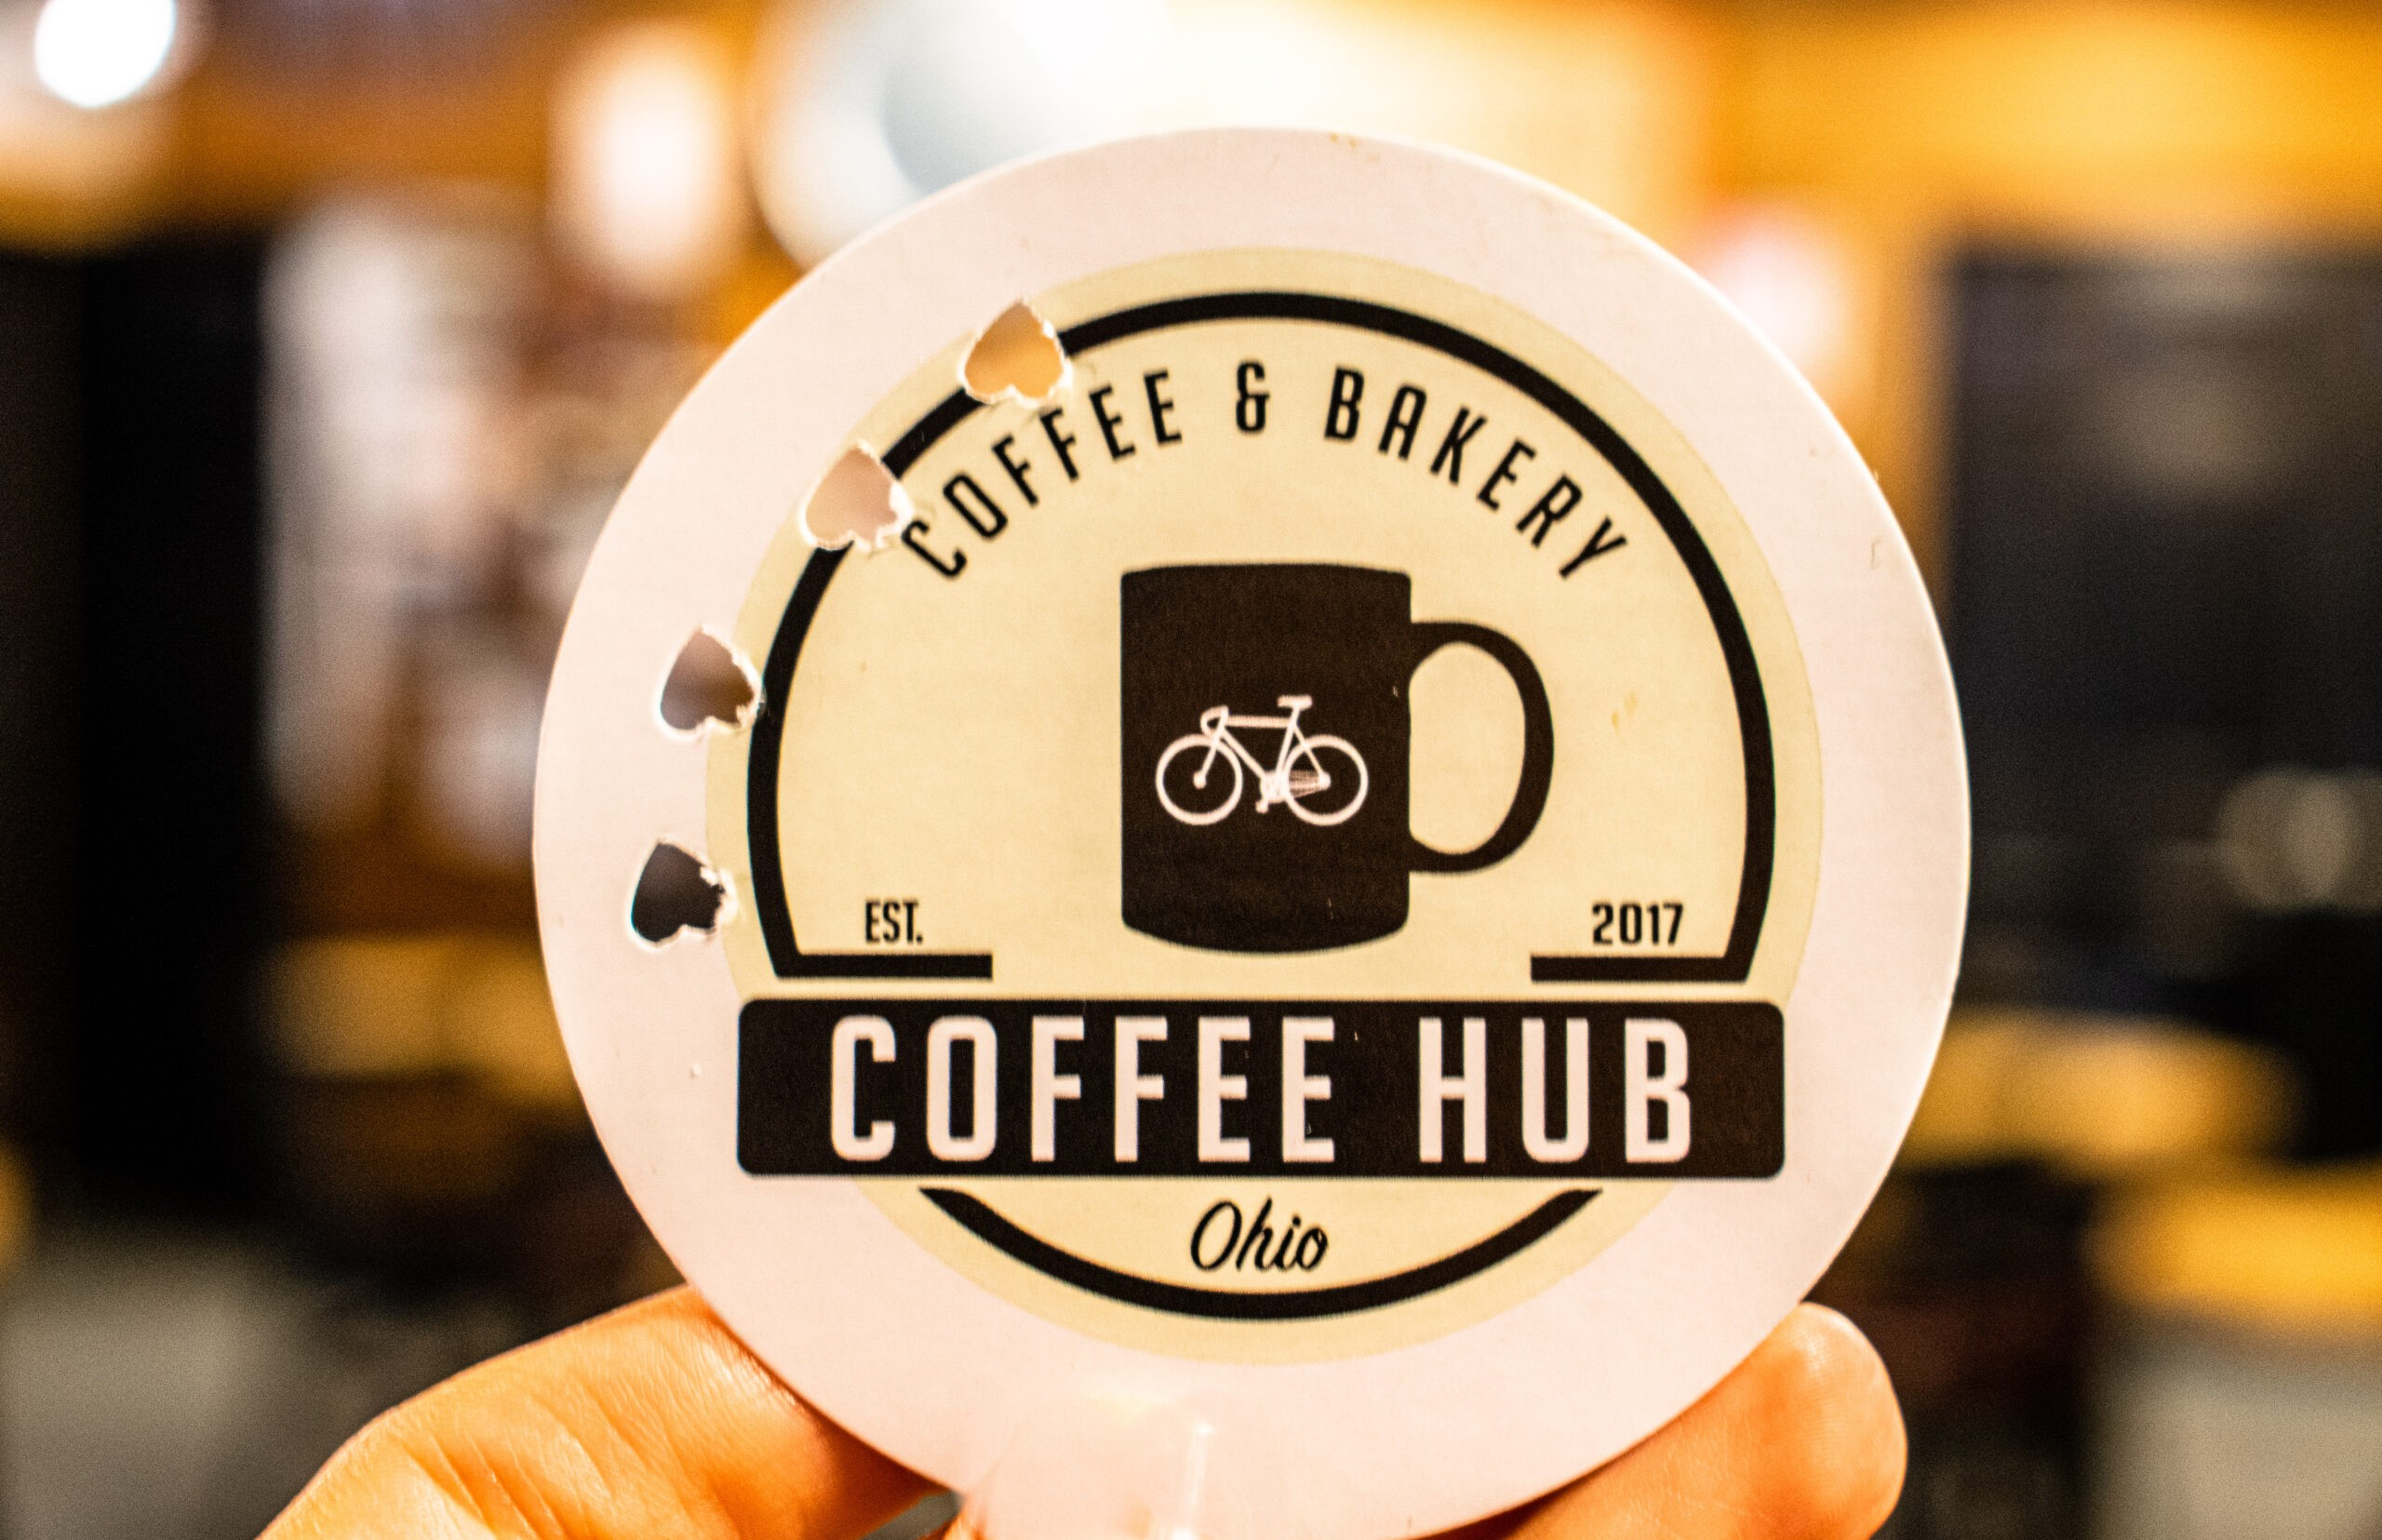 whole punched tag from Coffee Hub, coffee